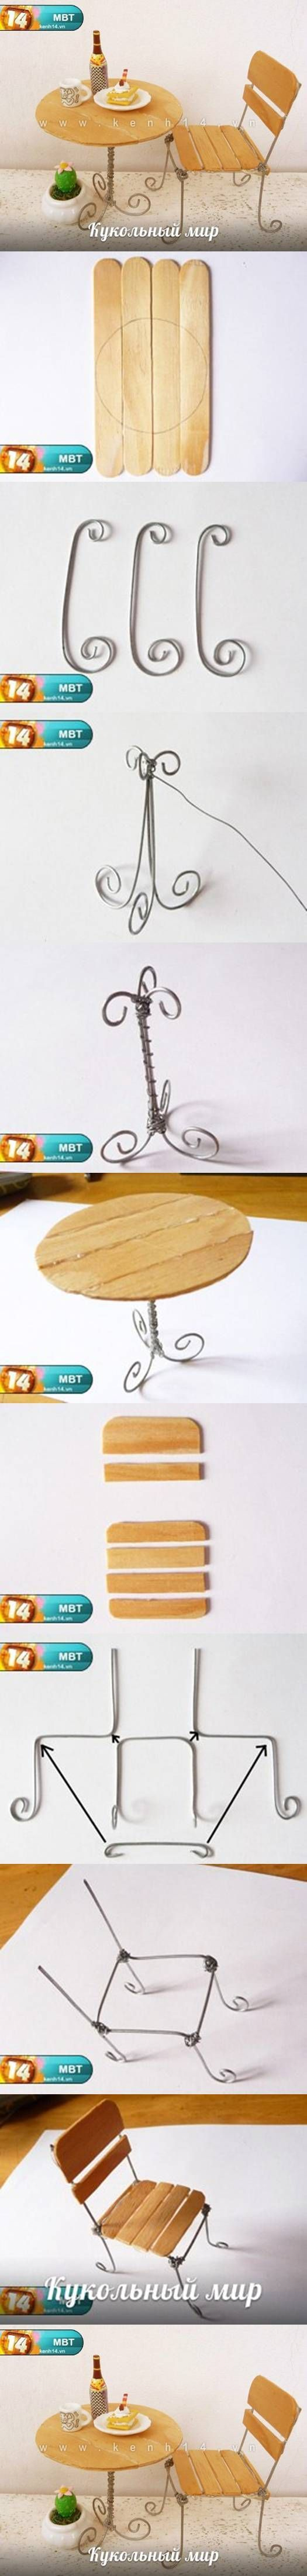 DIY Popsicle Stick Desk and Chair